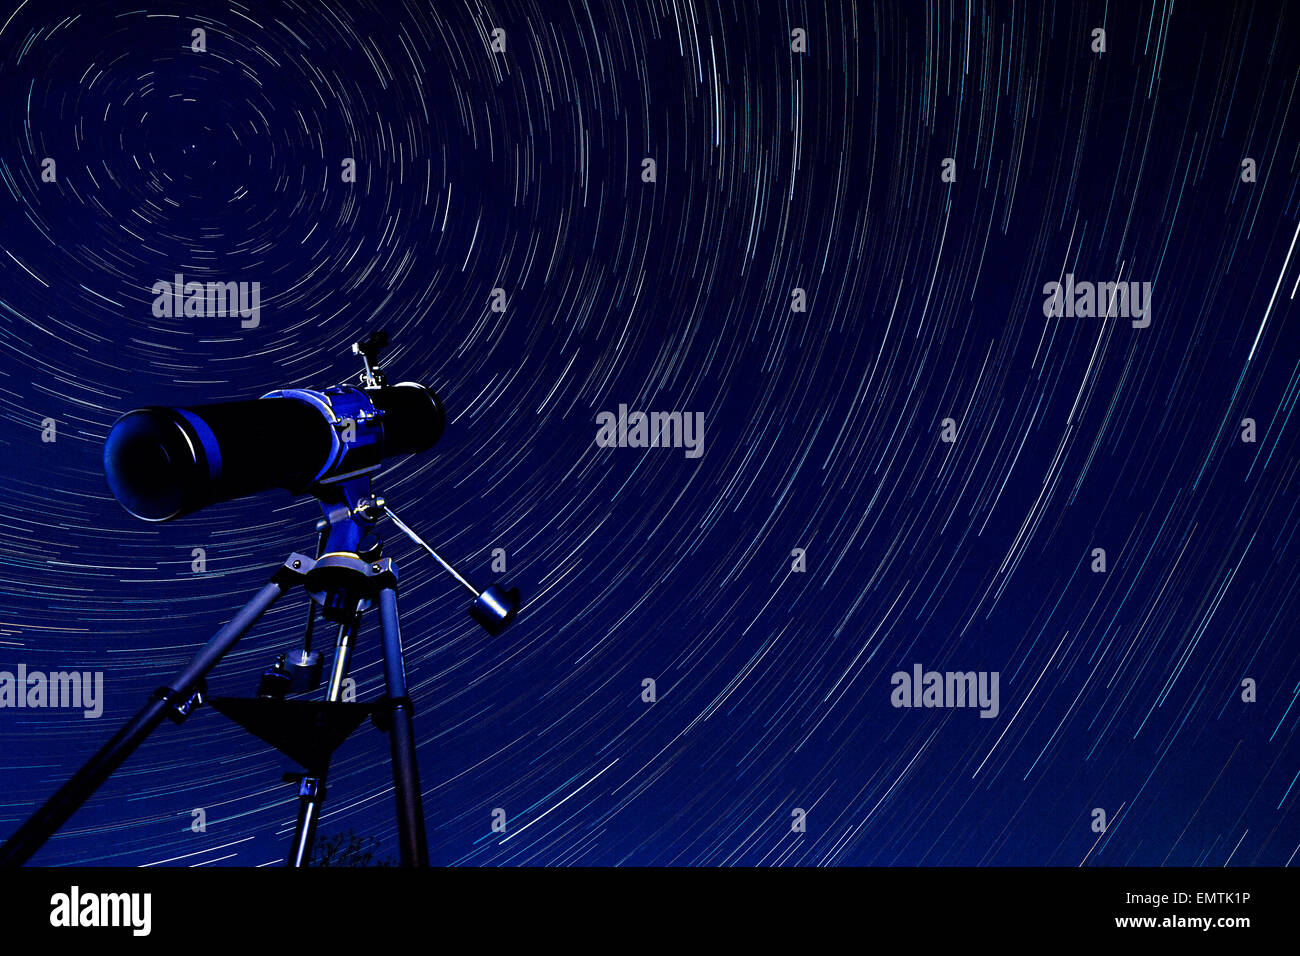 Astronomy - Star Trails in the early Spring sky in North Yorkshire in the United Kingdom. - Stock Image